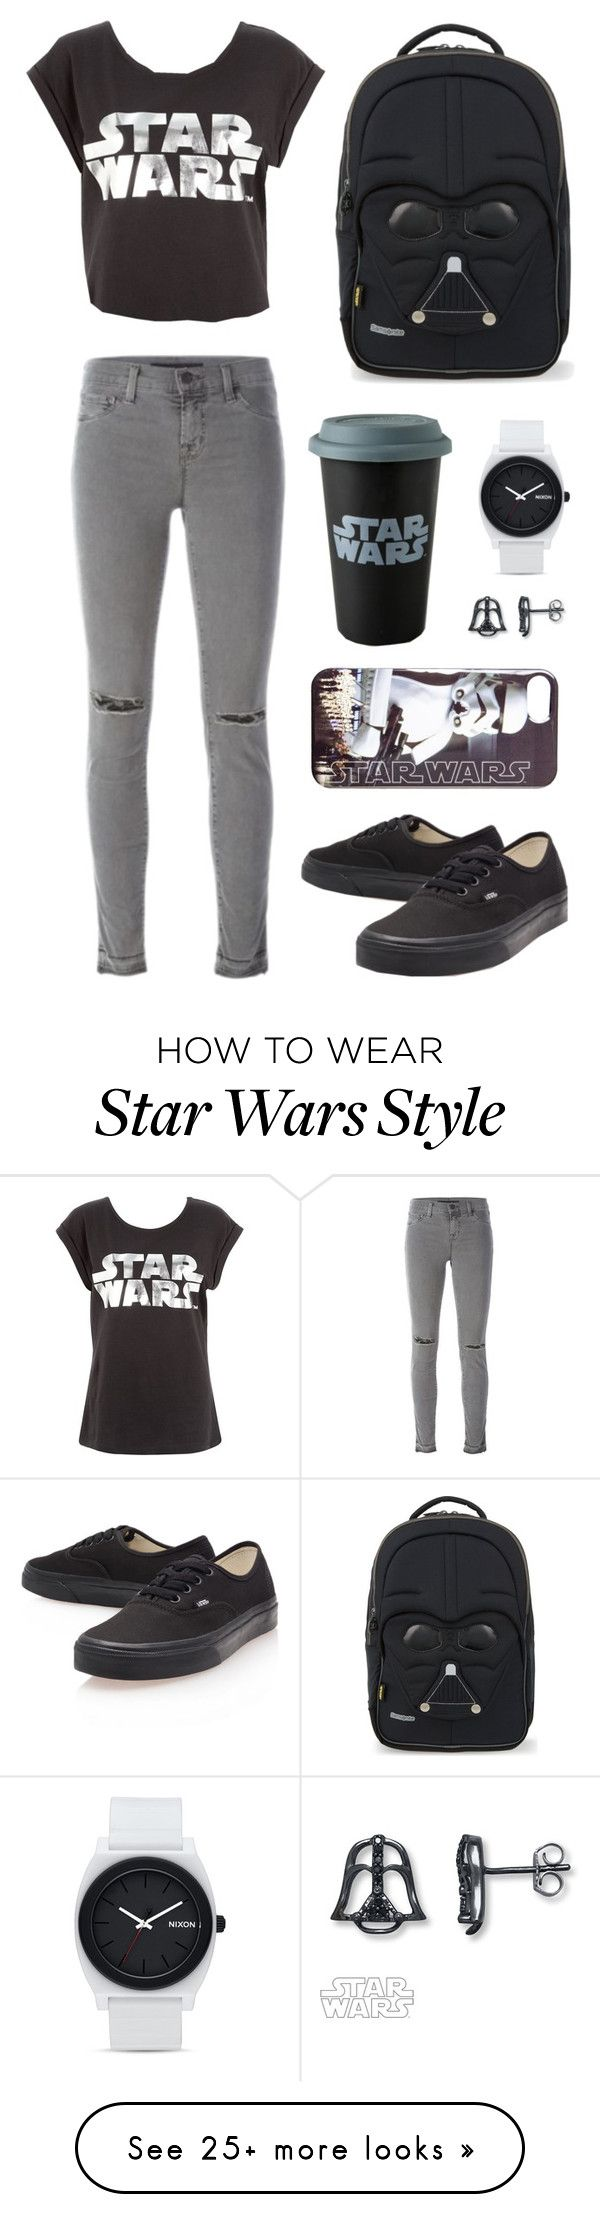 """Star Wars"" by picky-picky on Polyvore featuring J Brand, Vans, Samsonite and Nixon"